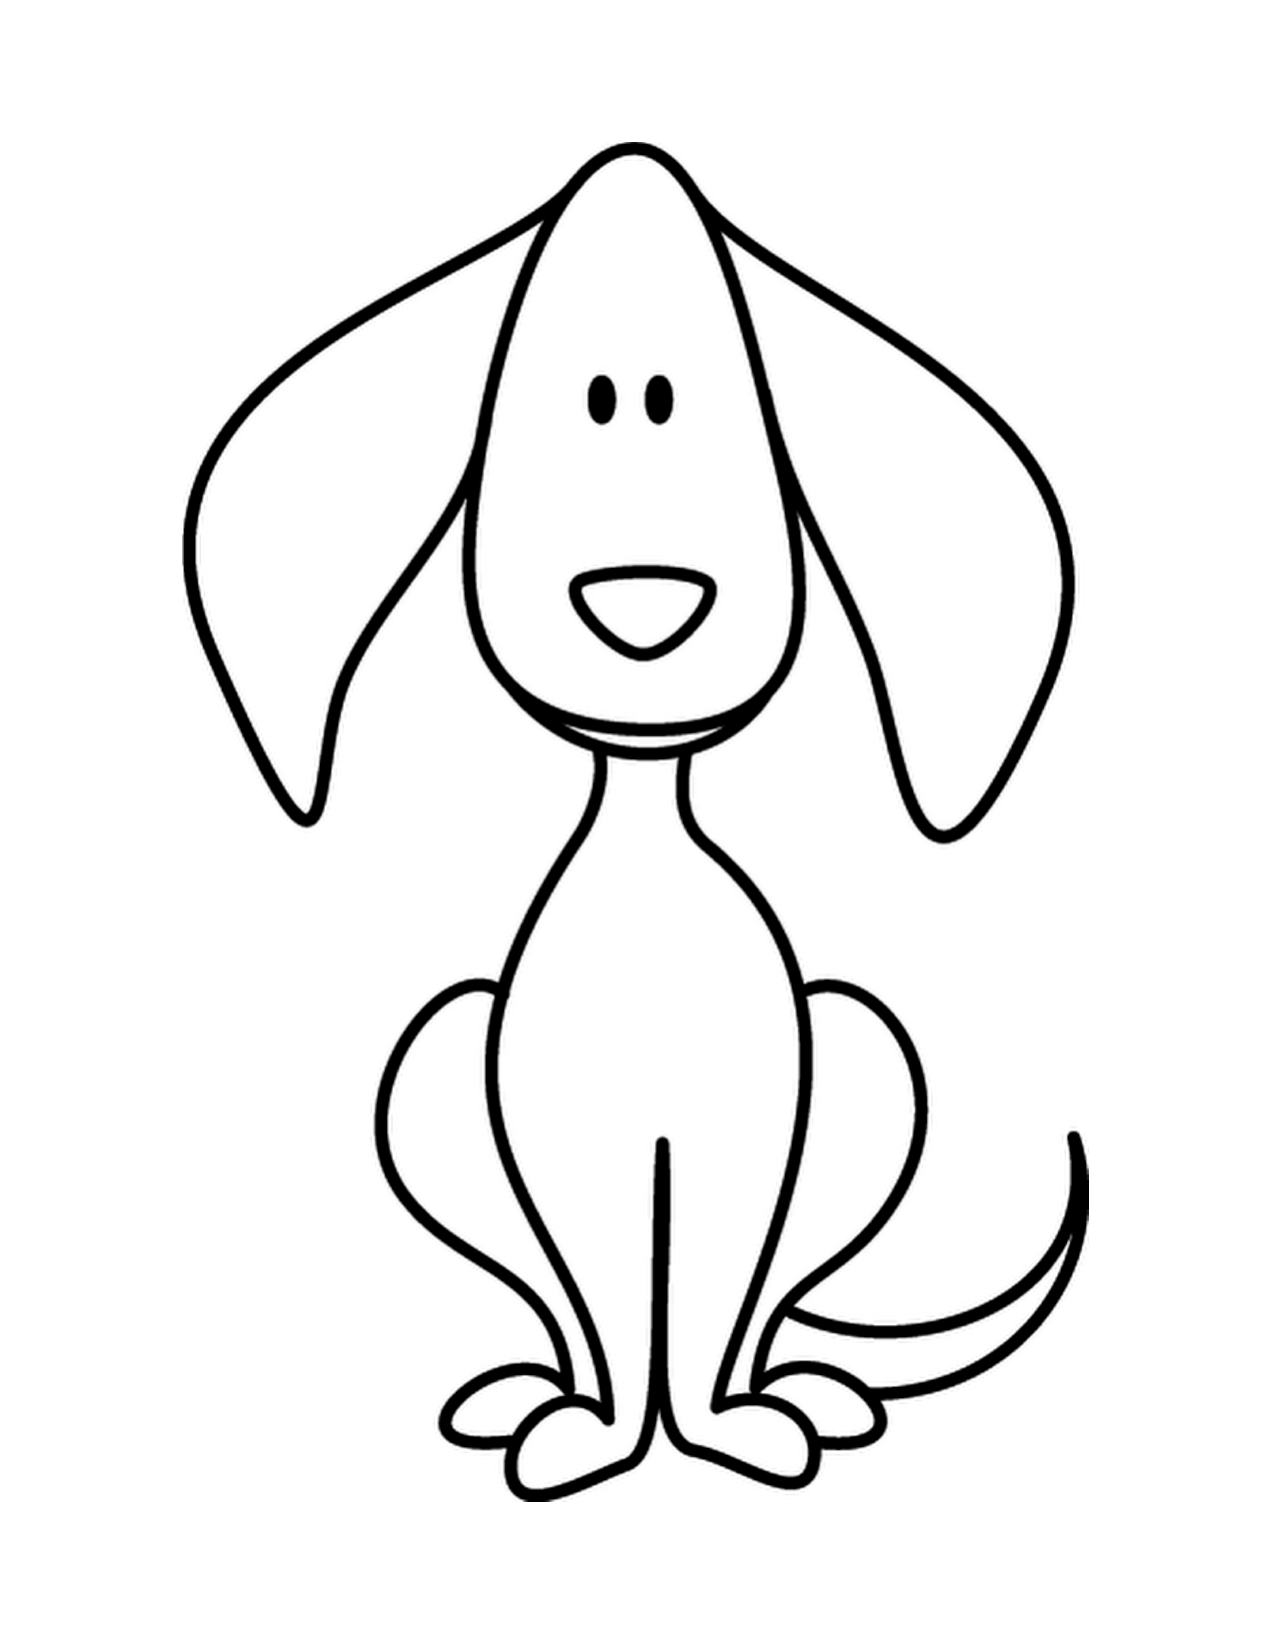 Dogs clipart easy. Puppy dog doodle coloring